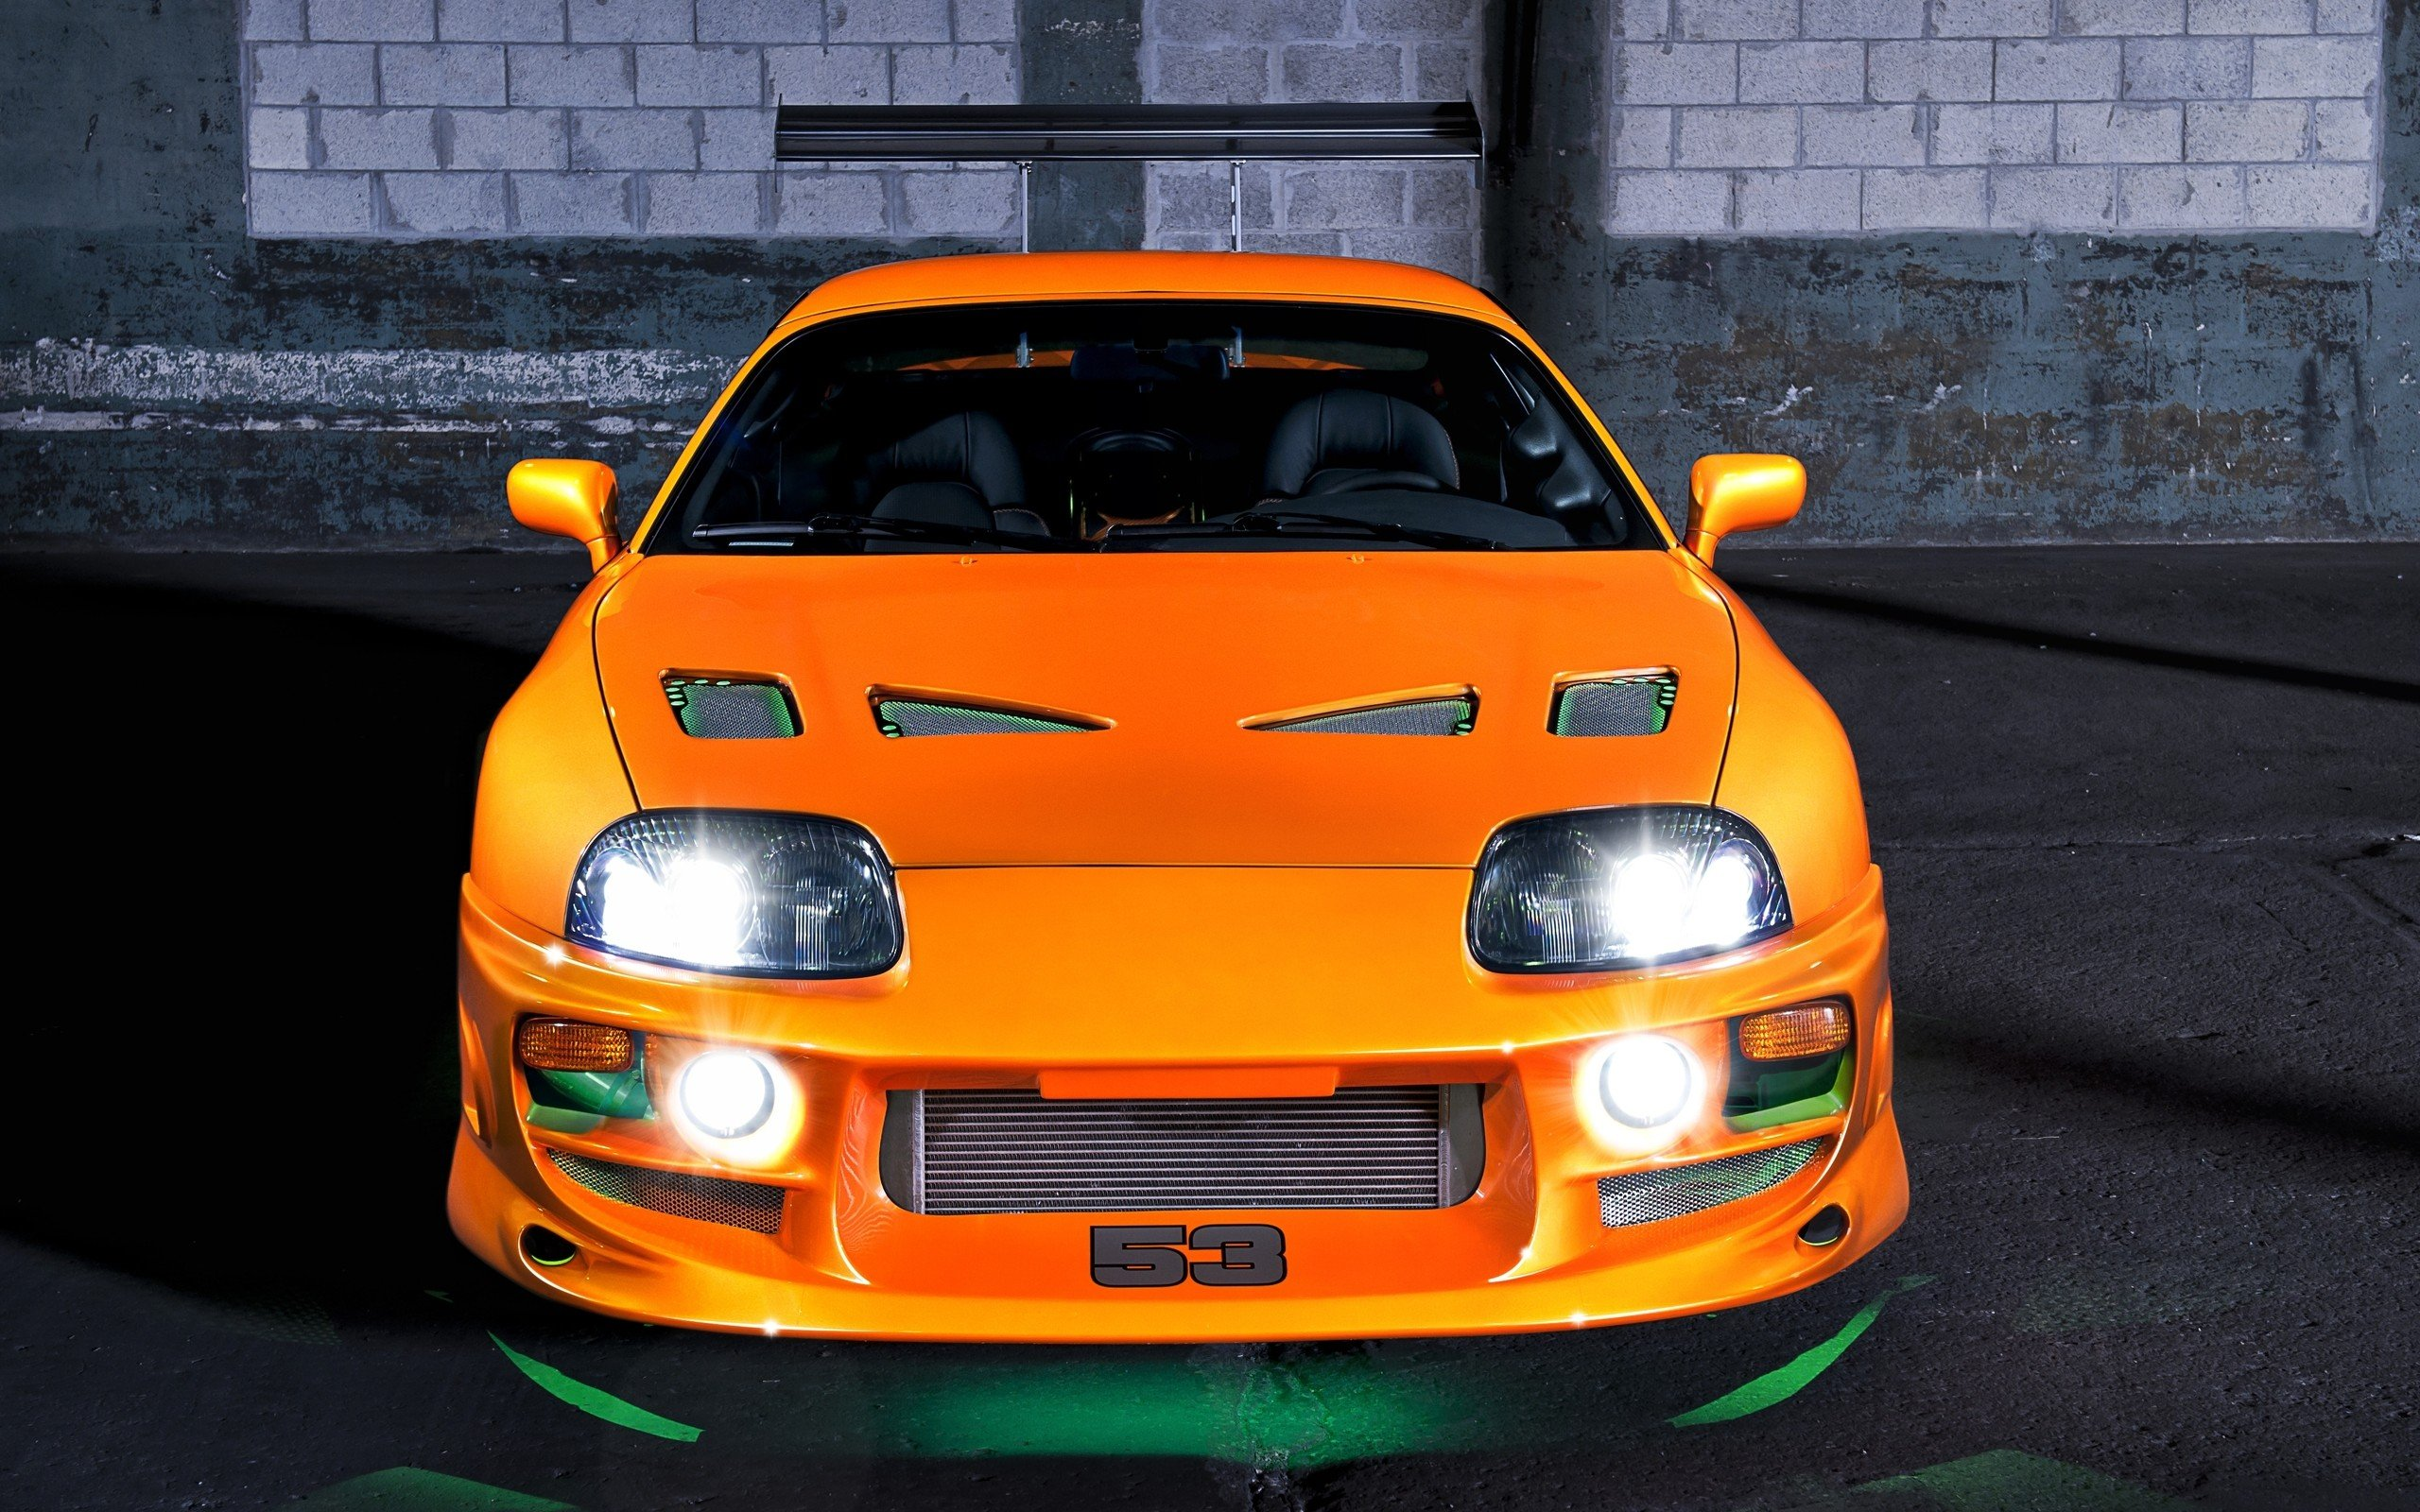 Cars Fast And Furious Toyota Supra JDM Japanese Domestic Market Wallpaper